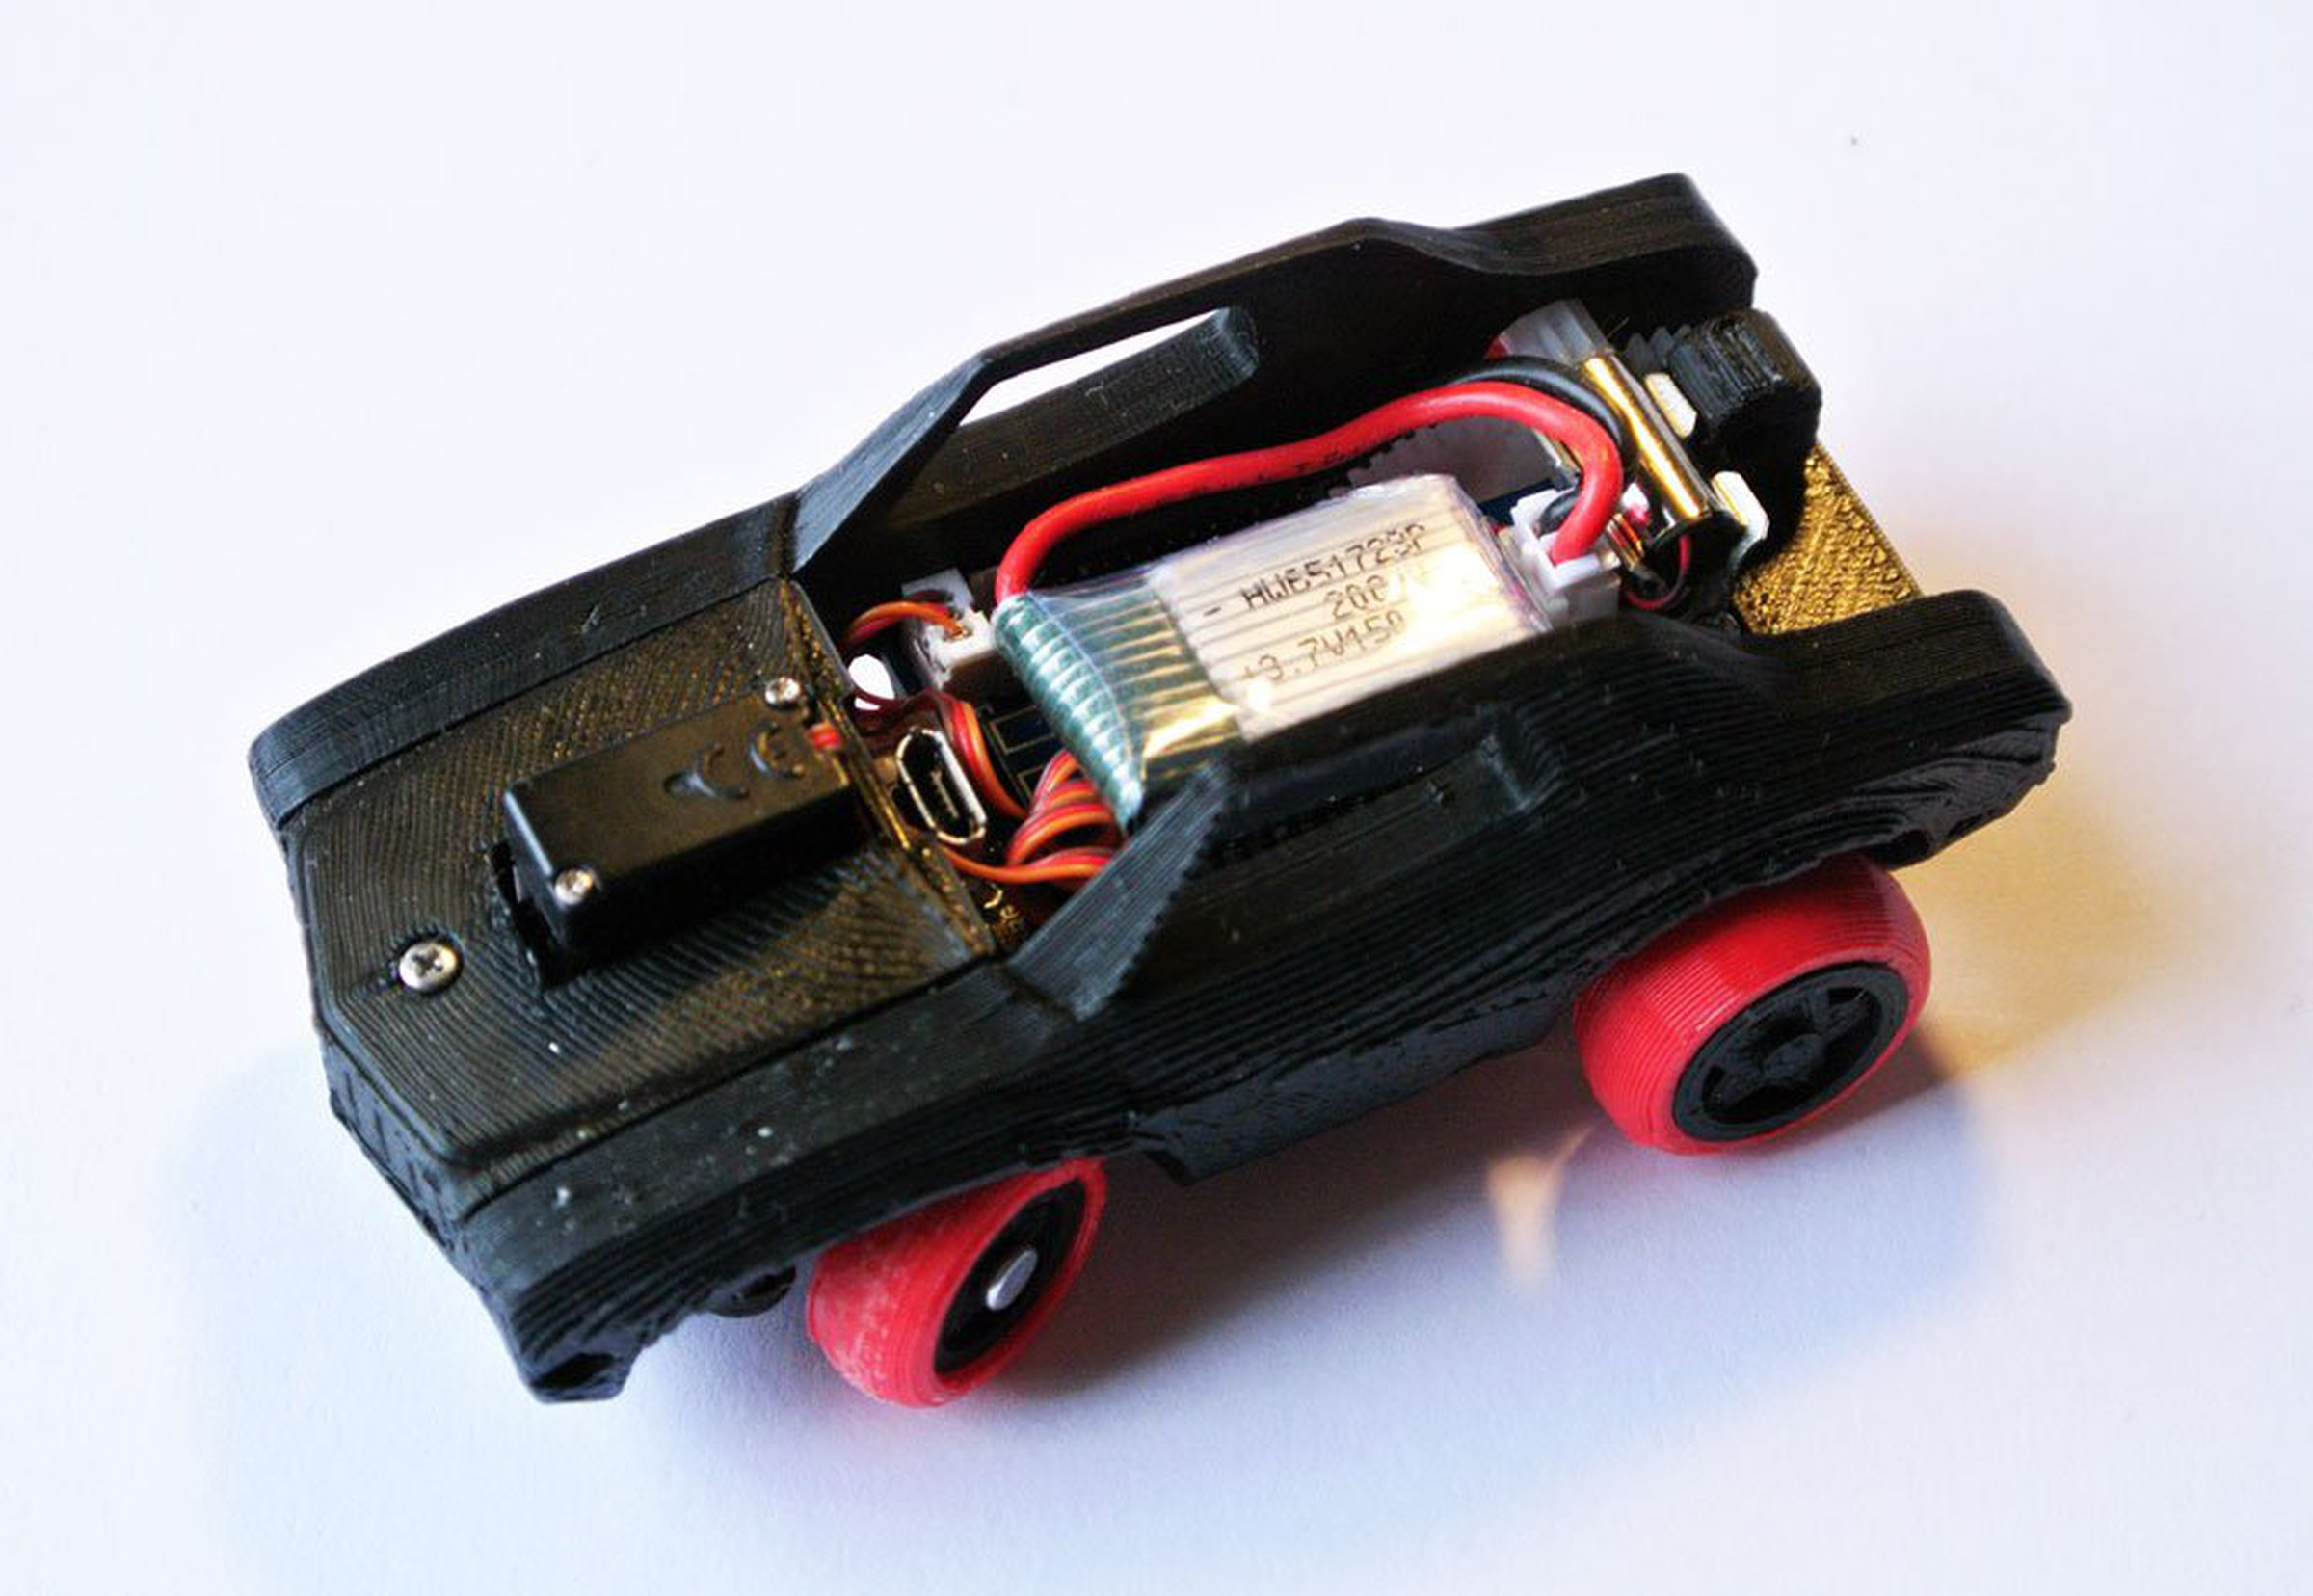 3DRacers 3D Printed RC Car Kit BLE Arduino from Marco D Alia